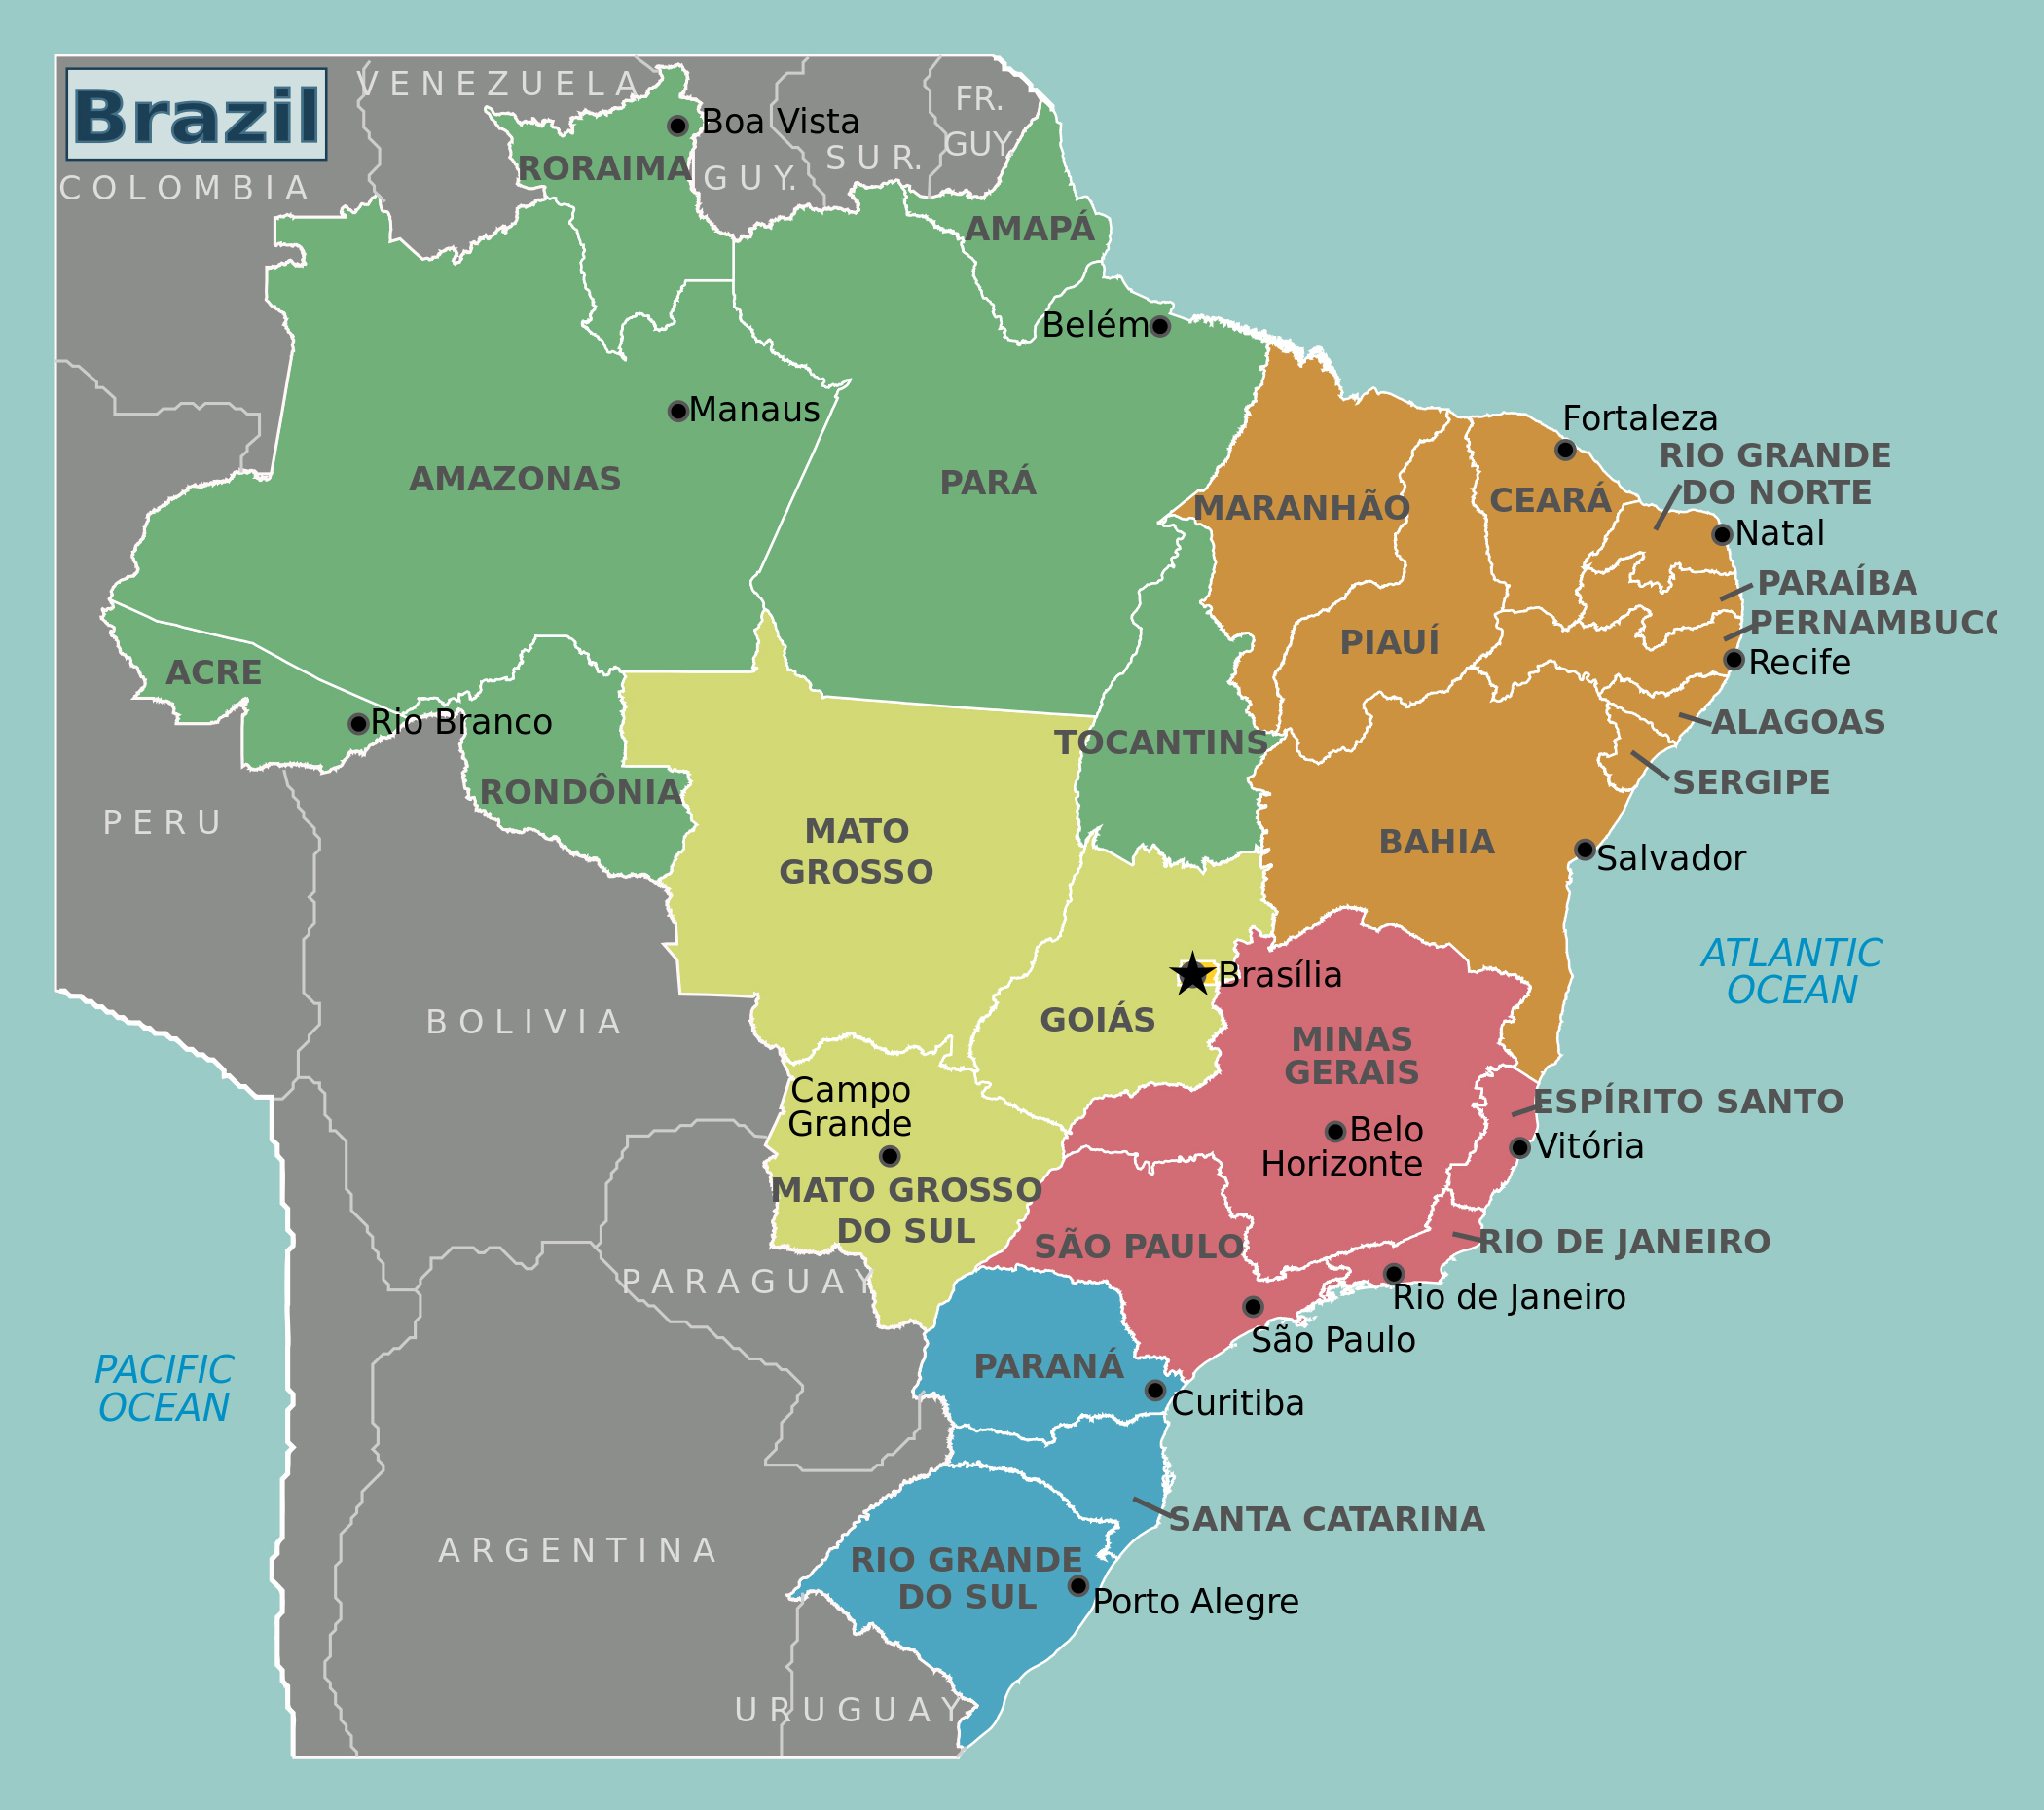 Large brazil regions map brazil south america mapsland maps large brazil regions map gumiabroncs Choice Image